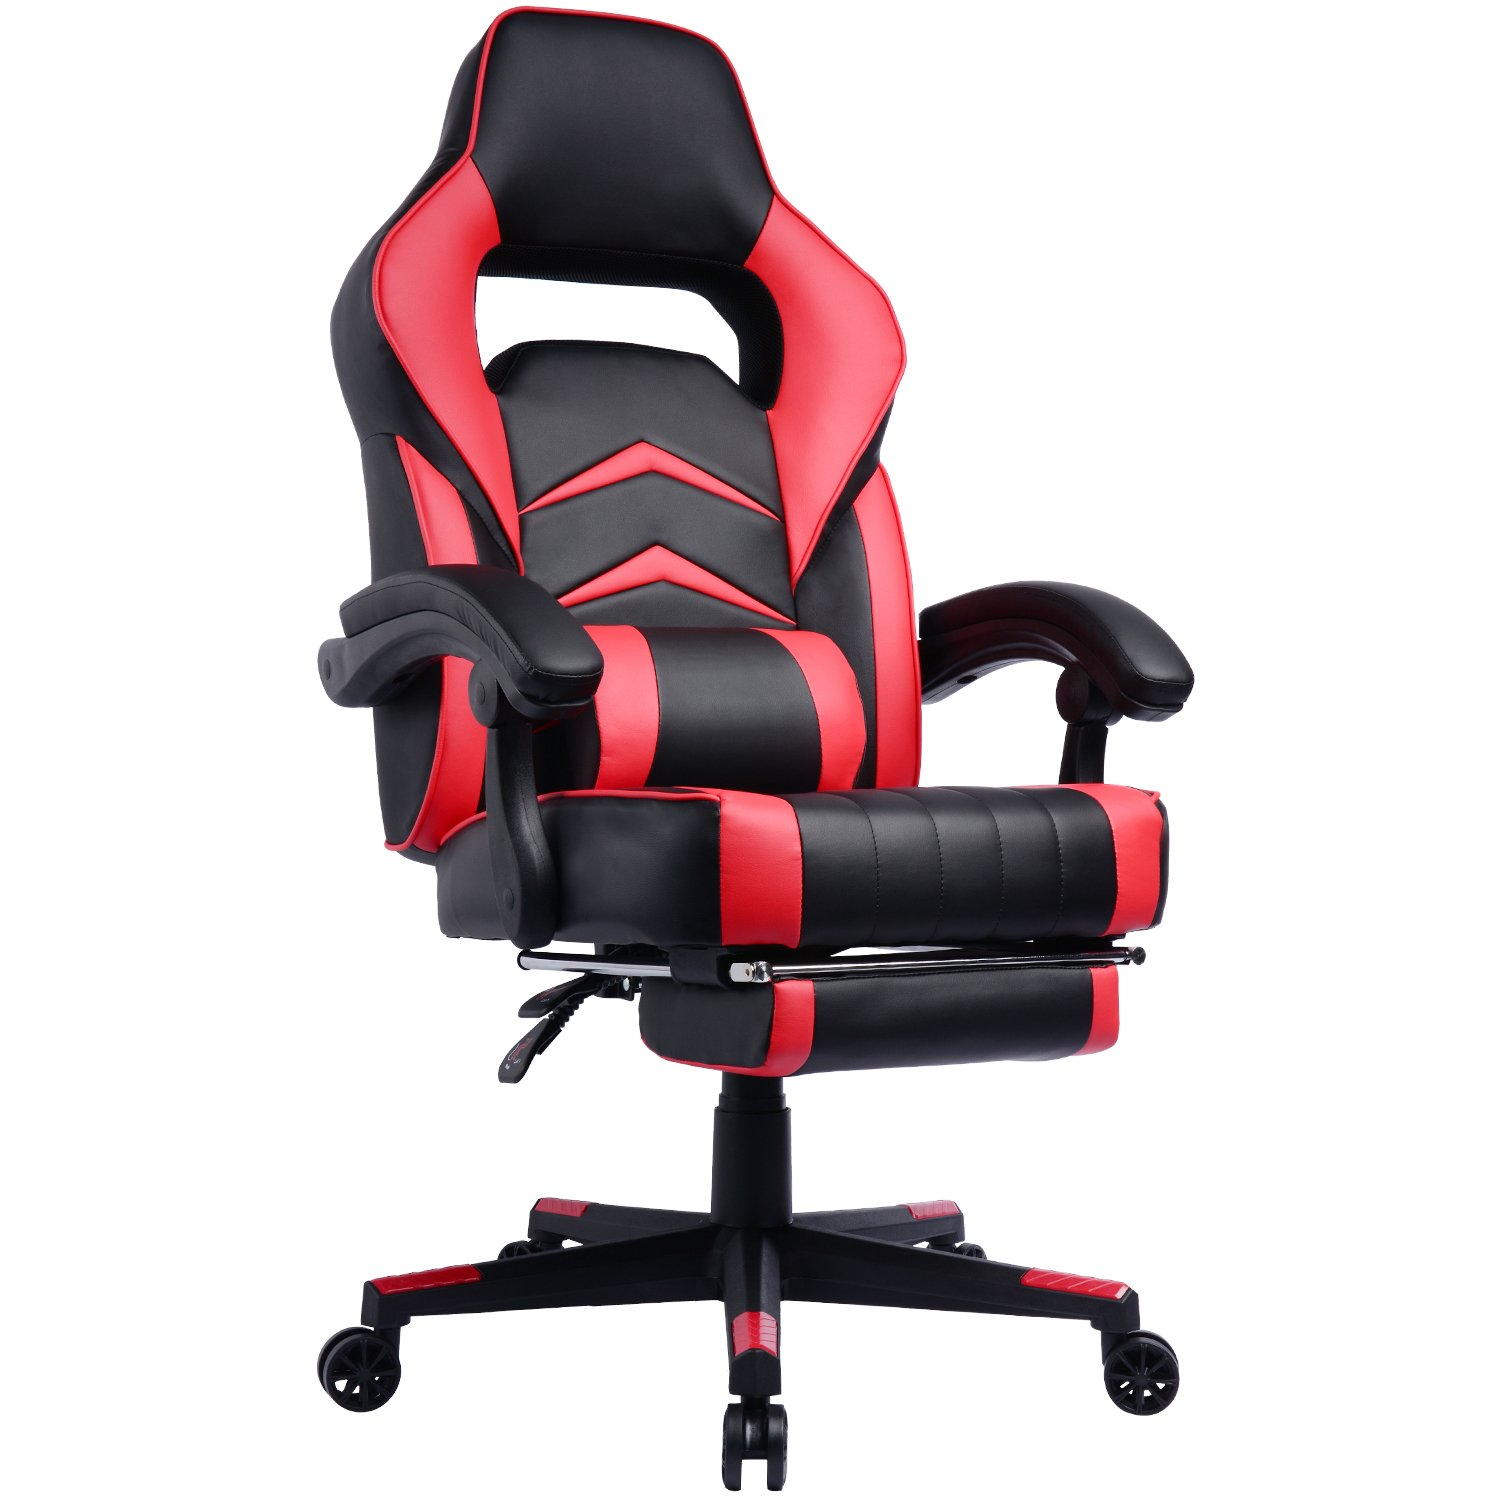 Gaming Chair with Footrest and Reclining Backrest, Racing Style High Back Office Chair - Chaise Gamer Prime Selection Products